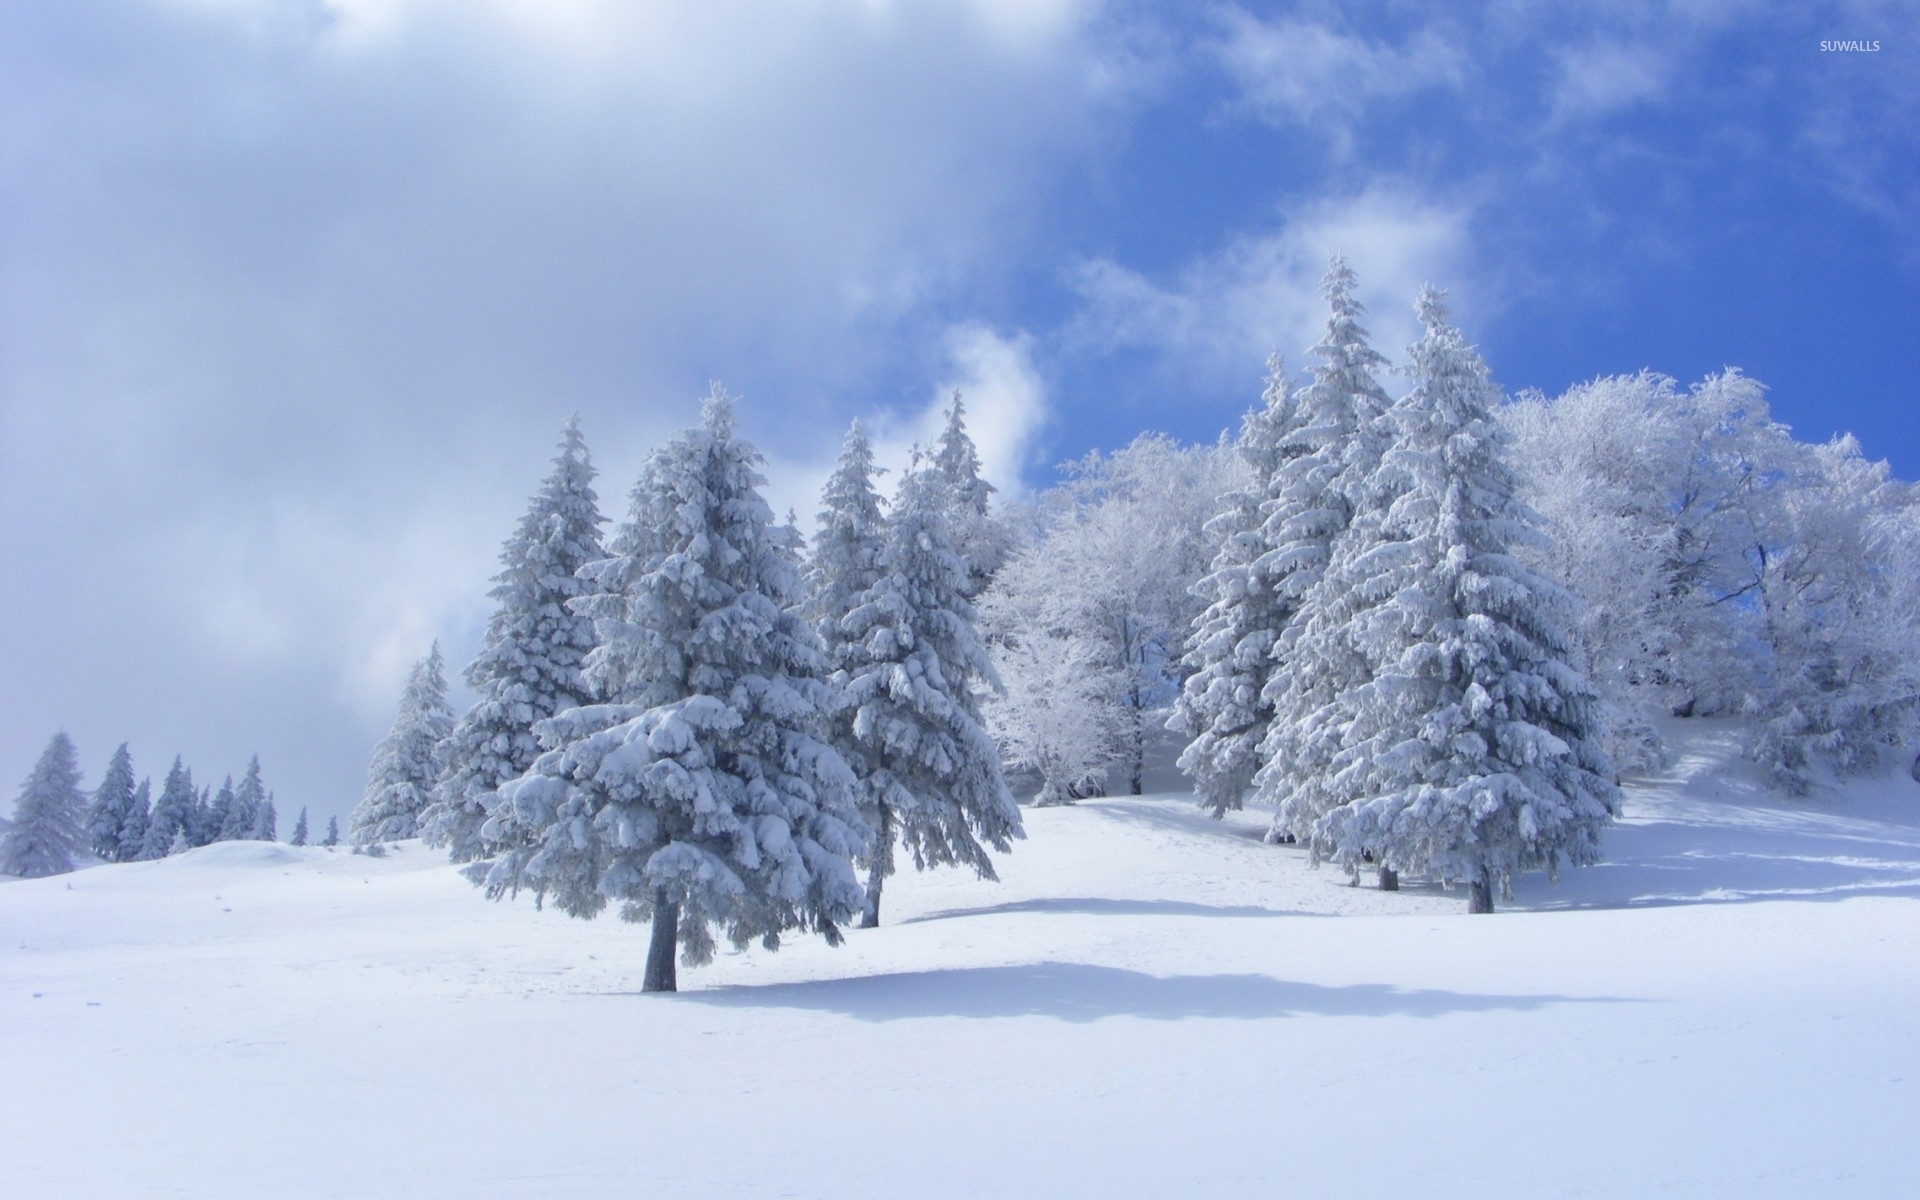 Thick Snow On Pine Trees Wallpaper Nature Wallpapers 36216